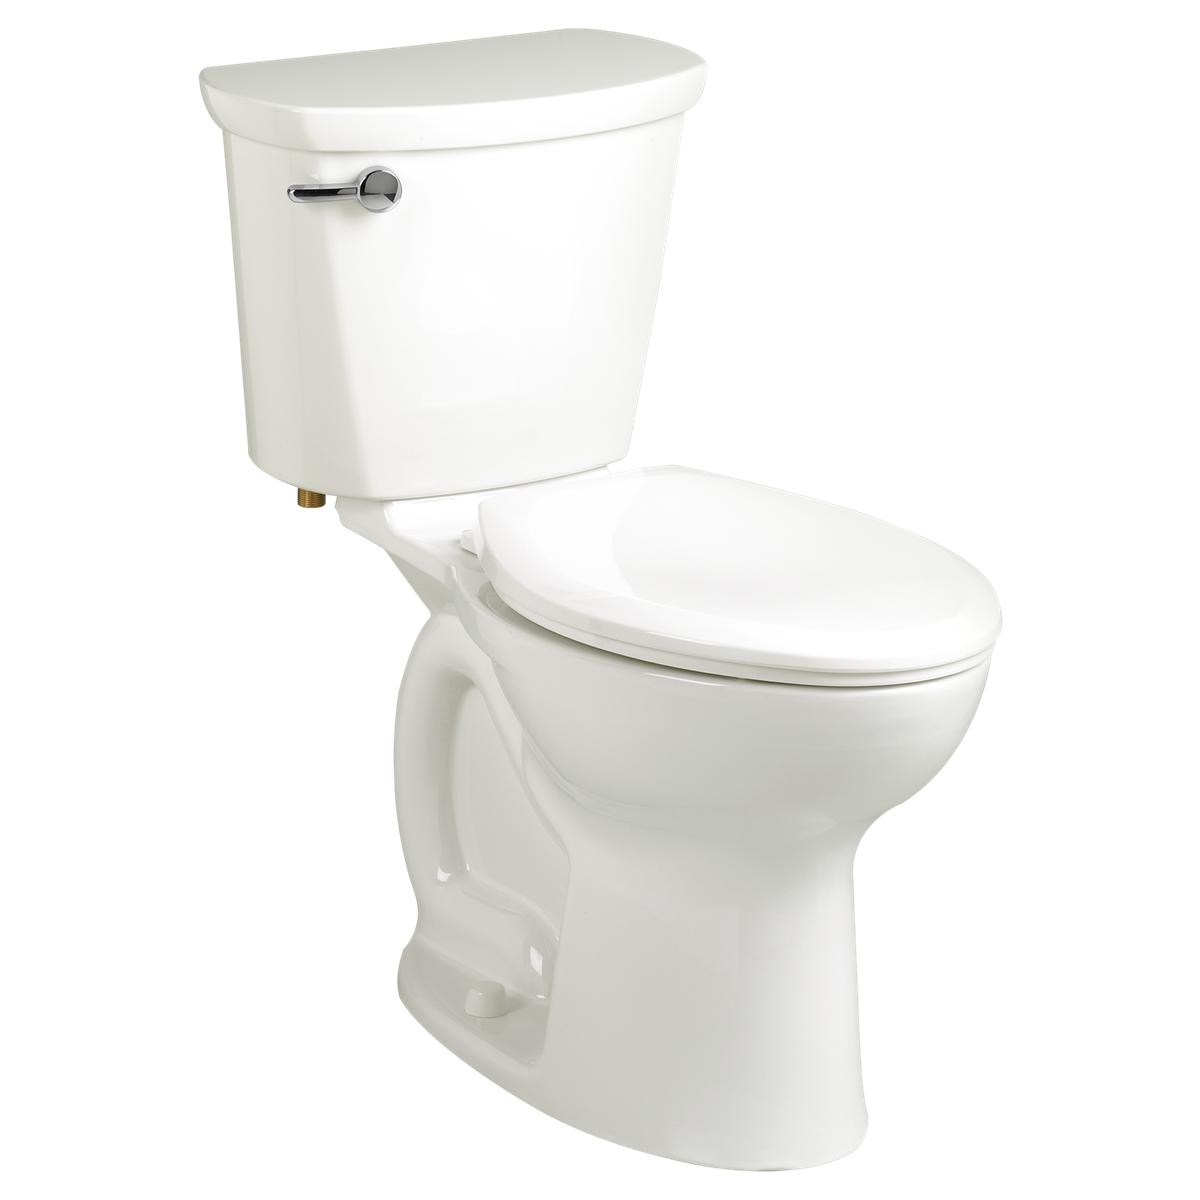 CADET PRO RIGHT HEIGHT TOILET TANK, 10 IN. ROUGH-IN, 1.6 GPF, RIGHT-HAND LEVER, WHITE